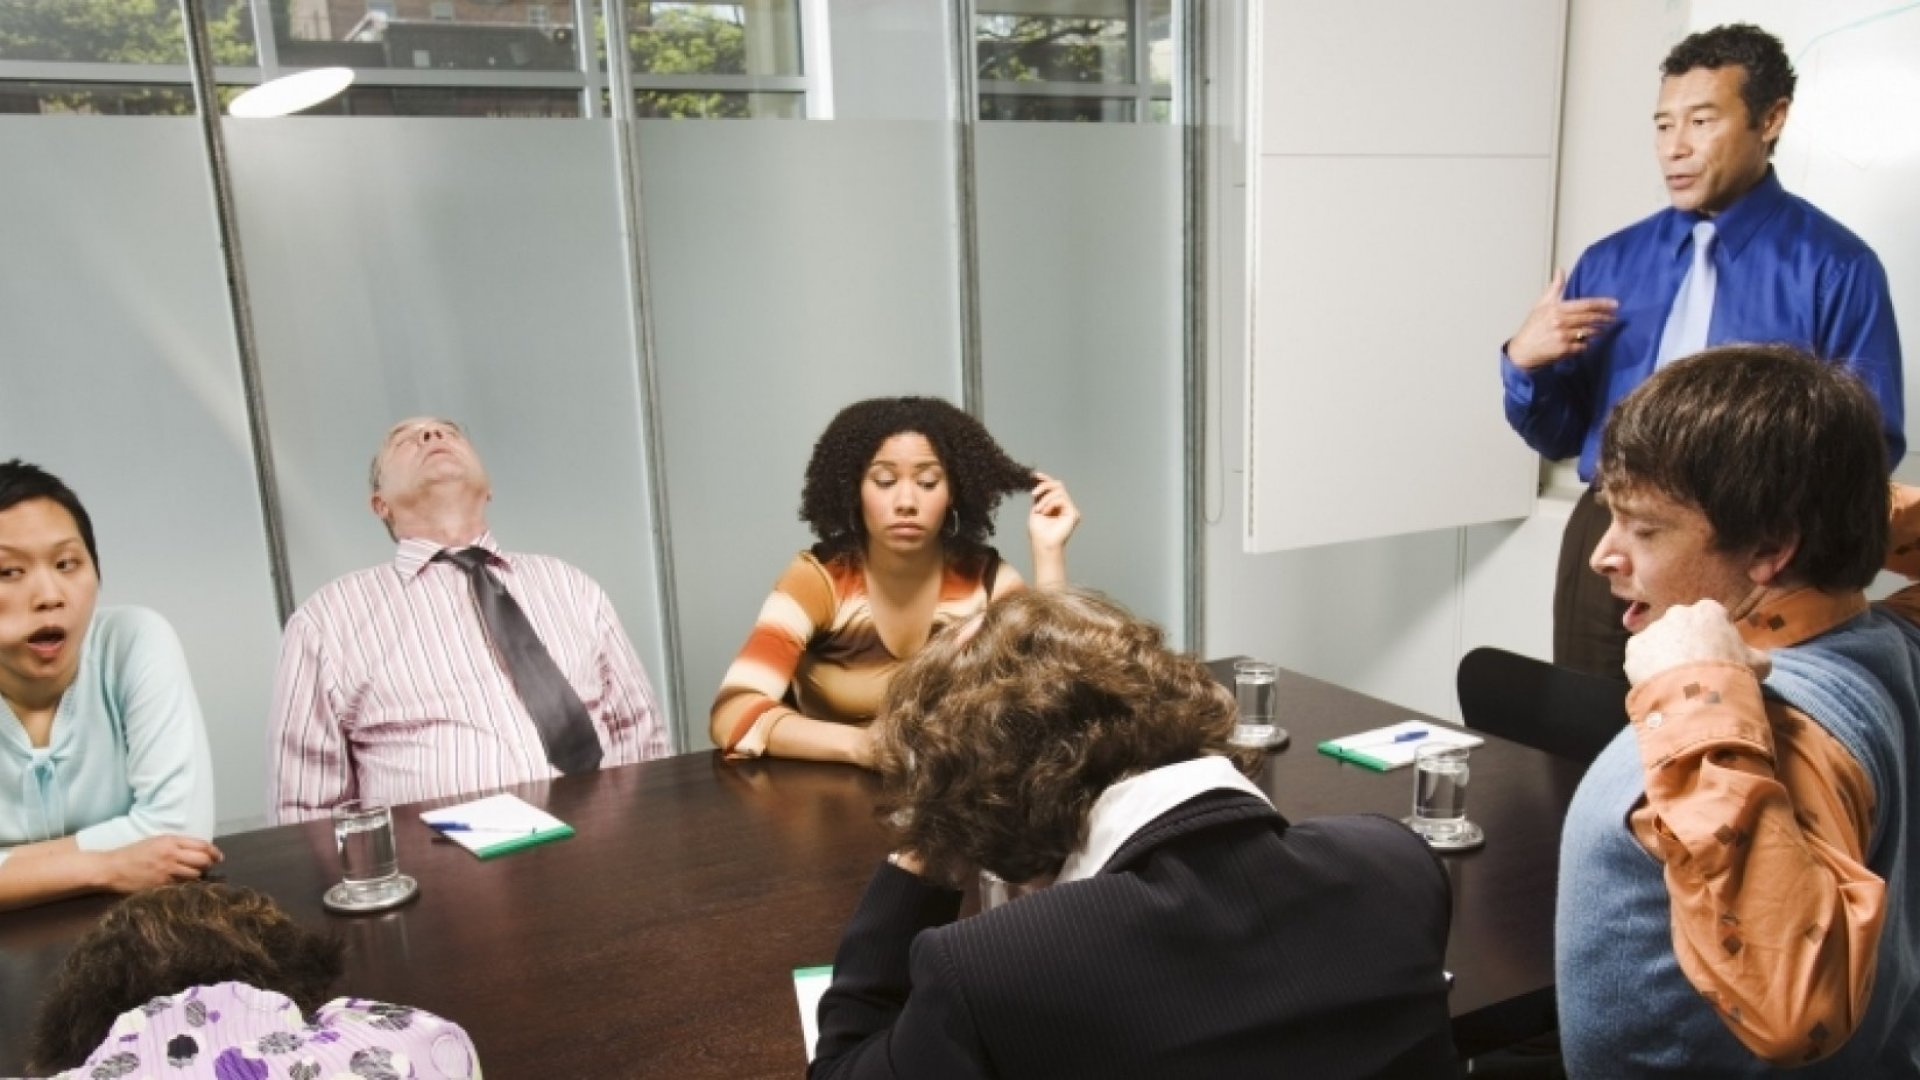 7 Tips for Leading Meetings More Effectively